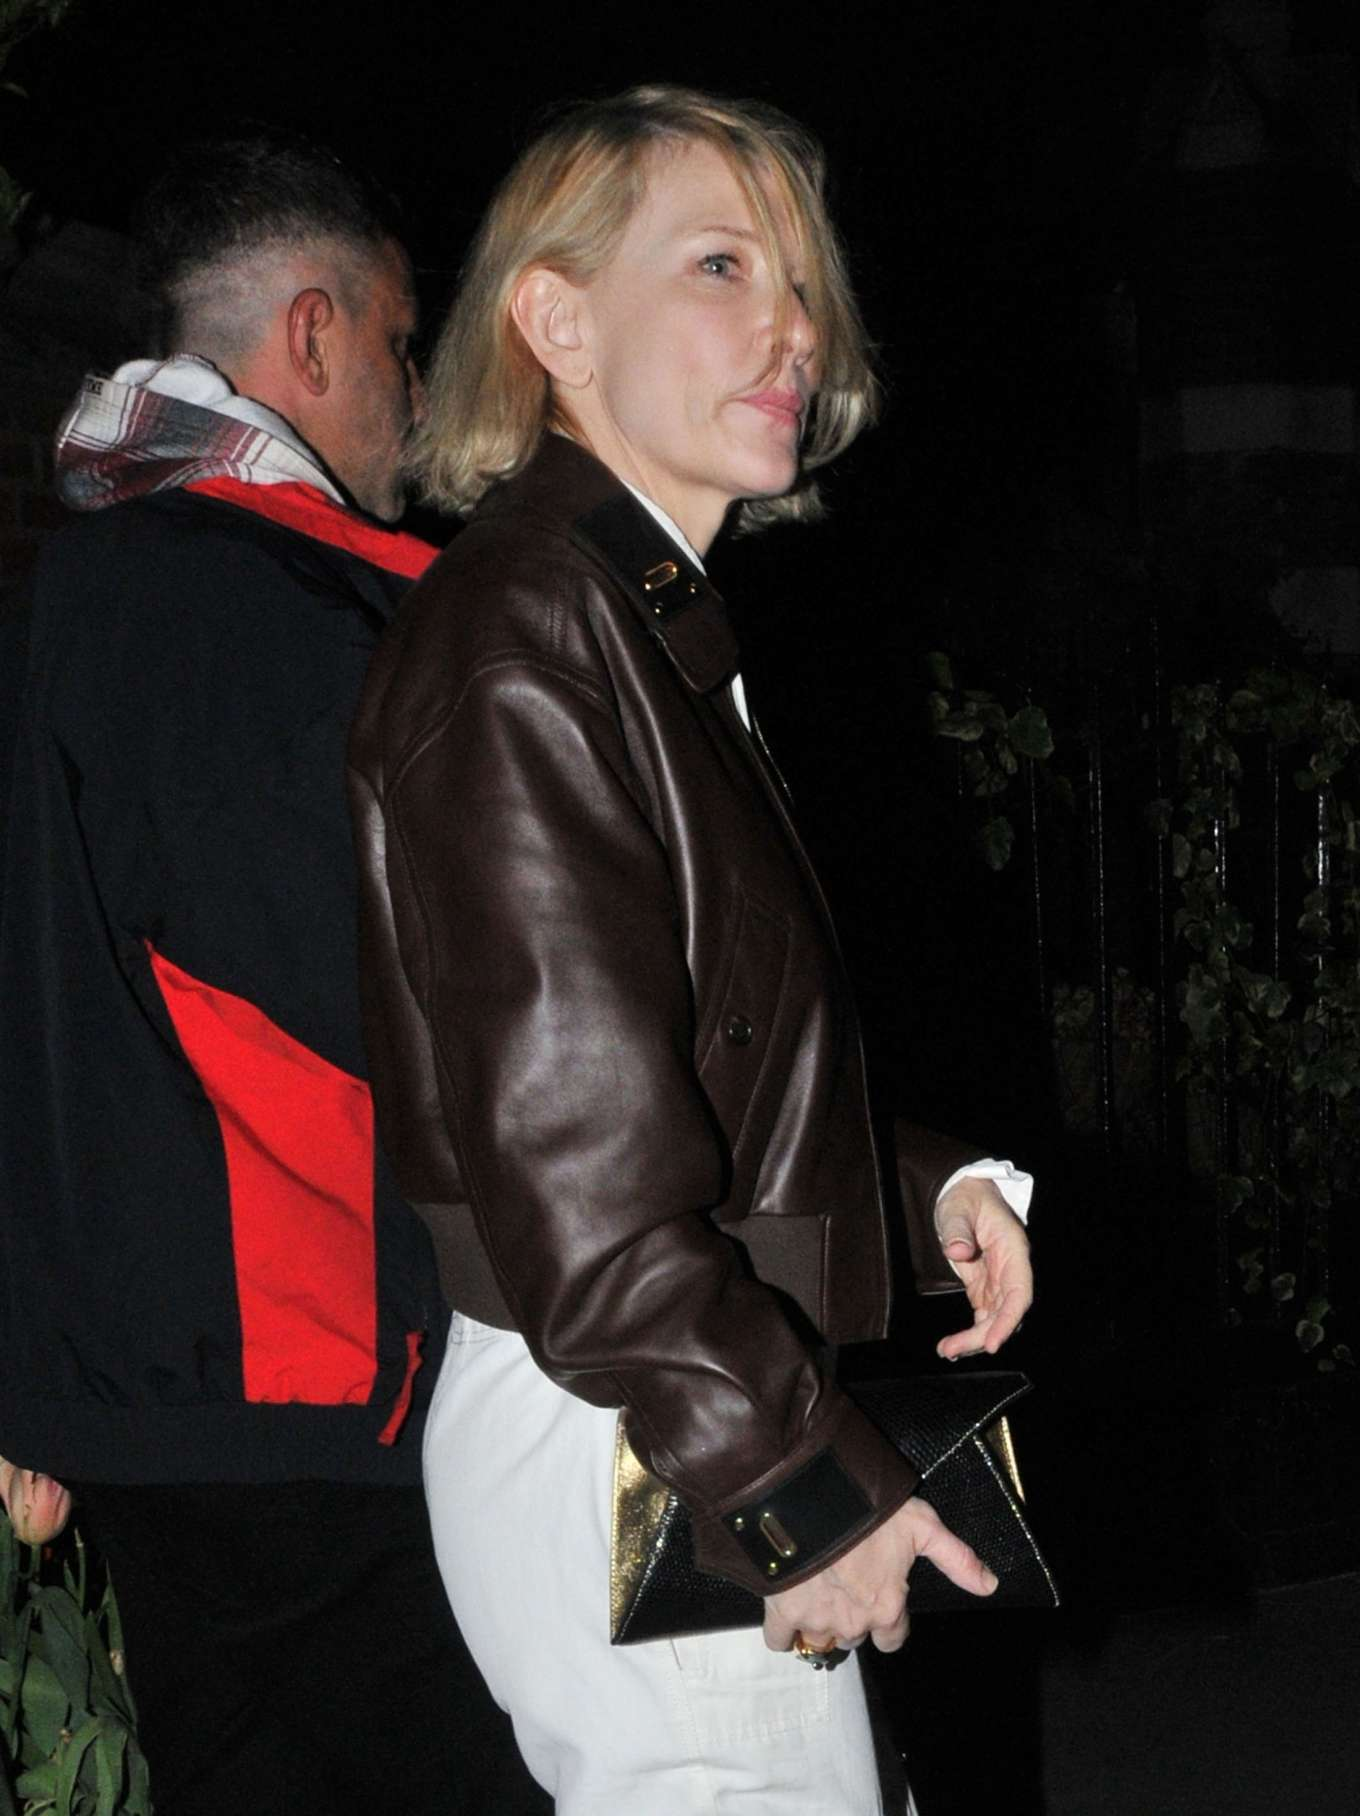 Cate Blanchett - Night out in London